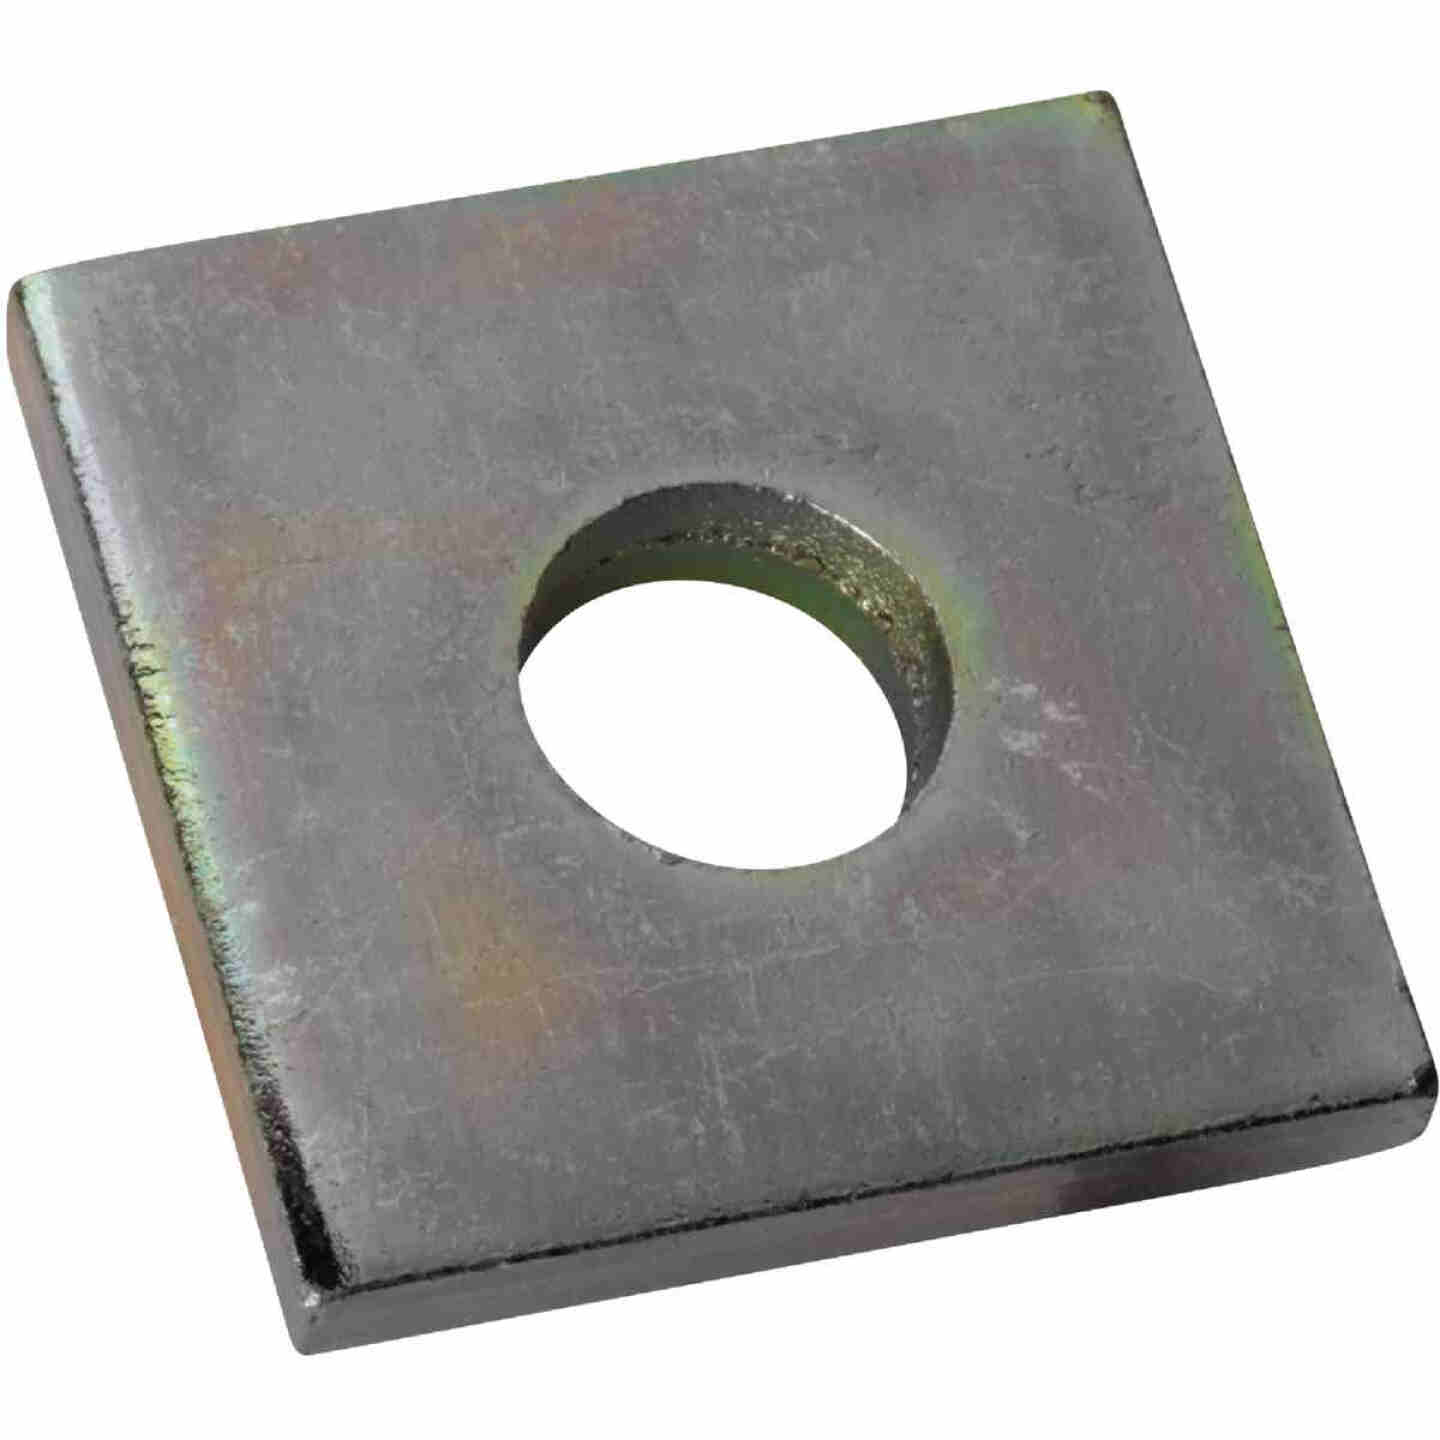 Superstrut 1-5/8 In. Square 3/8 In. Bolt Size Goldgalv Electroplated Zinc Square Washer Image 1